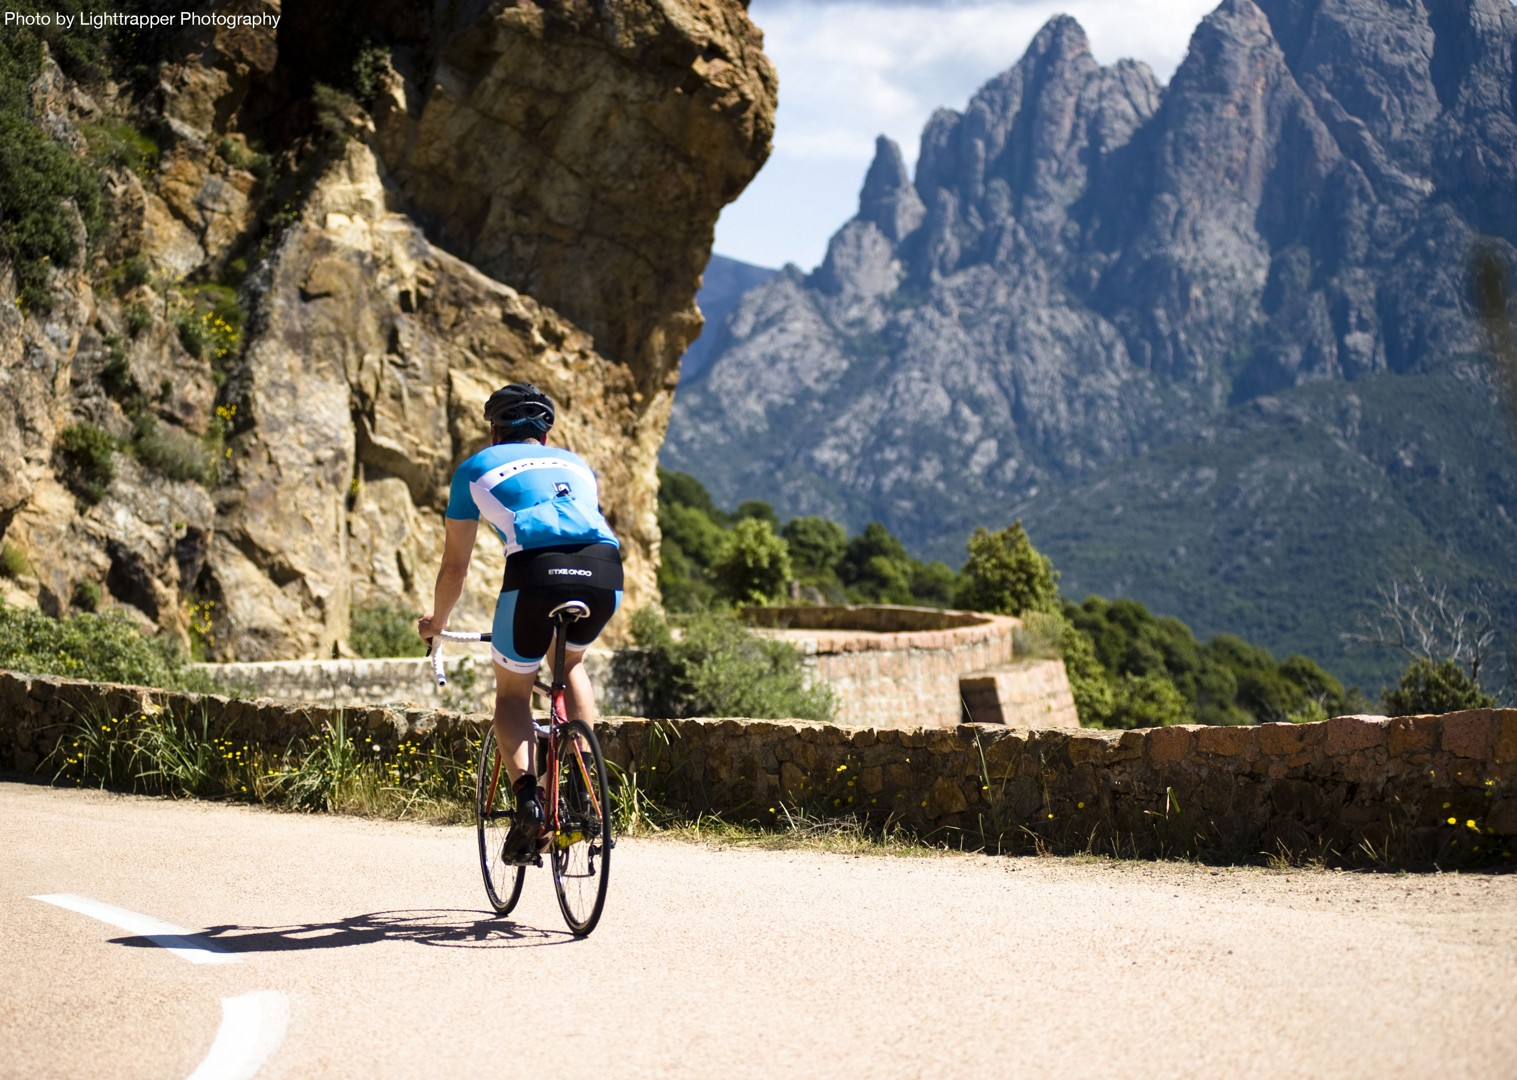 road-cycling-holiday-france-corsica-france-southern-secrets.jpg - France - Corsica - Southern Secrets - Guided Road Cycling Holiday - Road Cycling